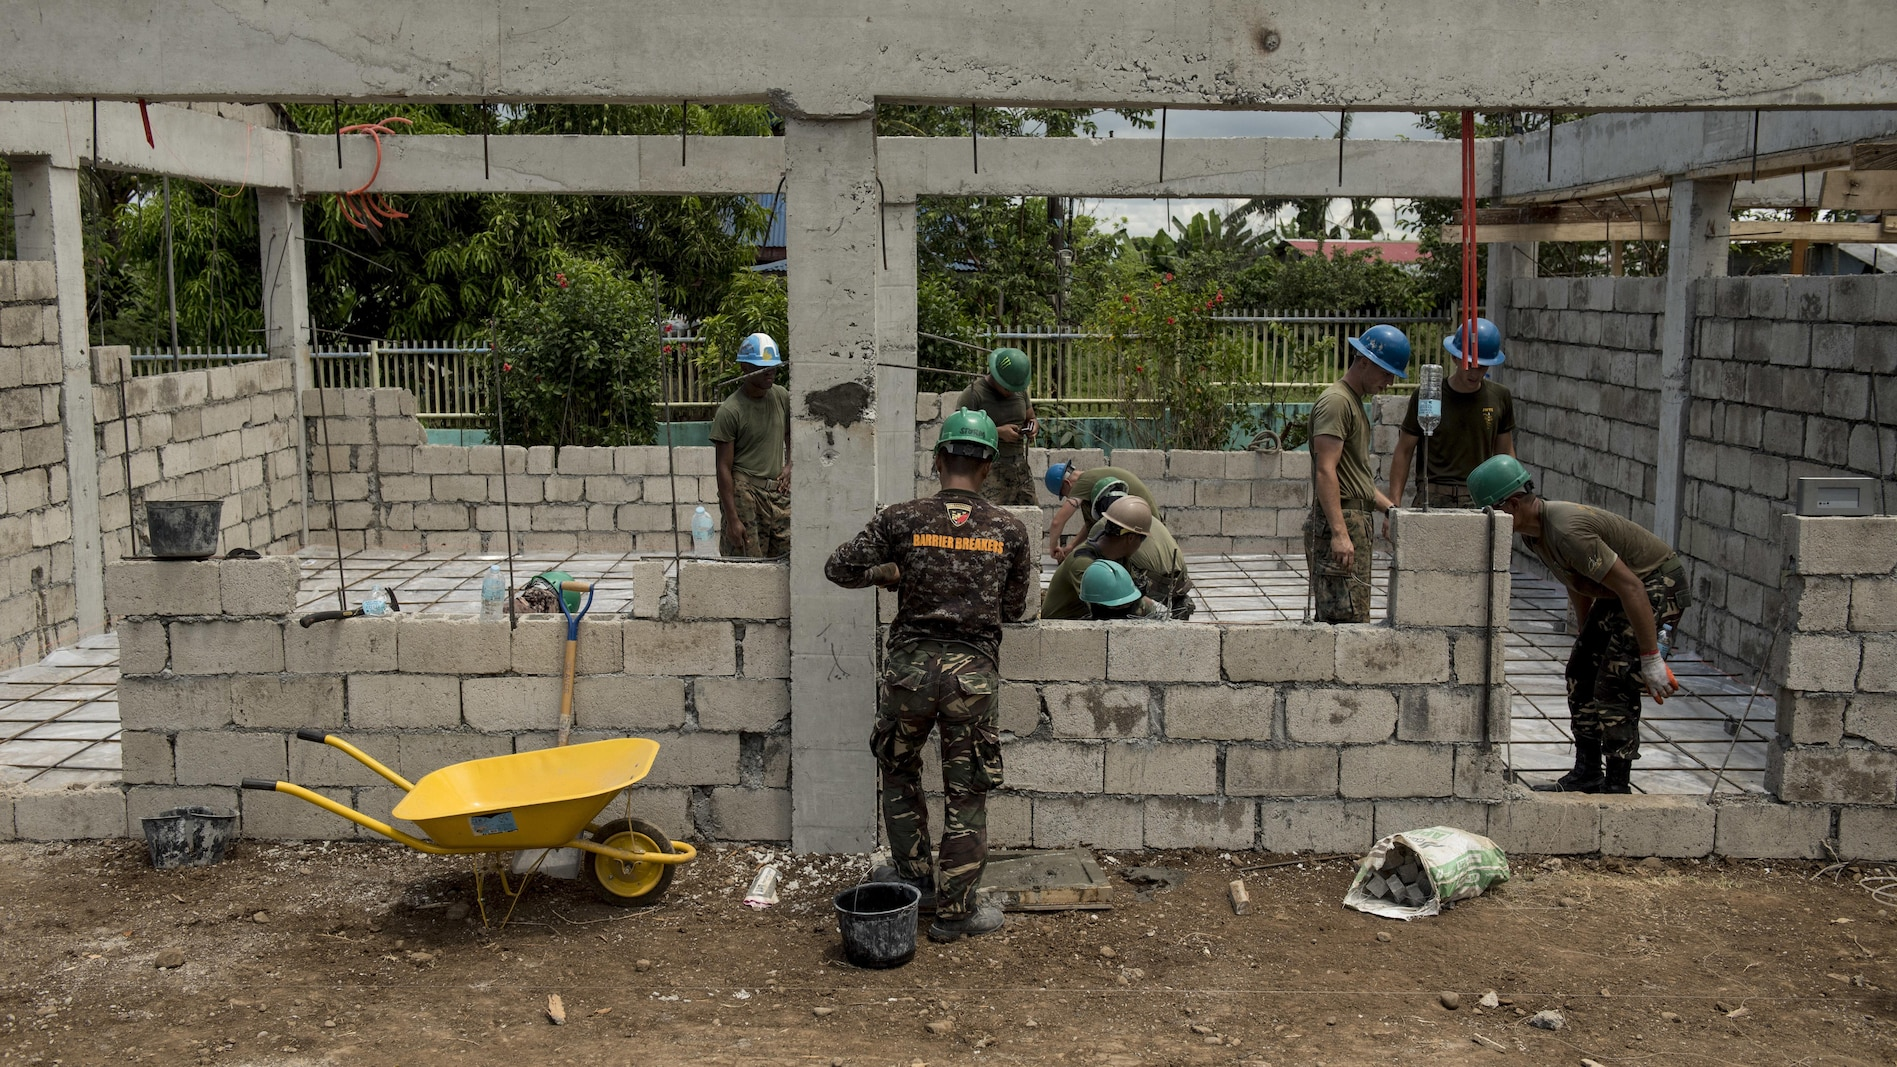 Philippine Soldiers and U.S. military engineers prepare a structure for concrete pouring during Balikatan 2017 in Ormoc City, Leyte, April 23, 2017.